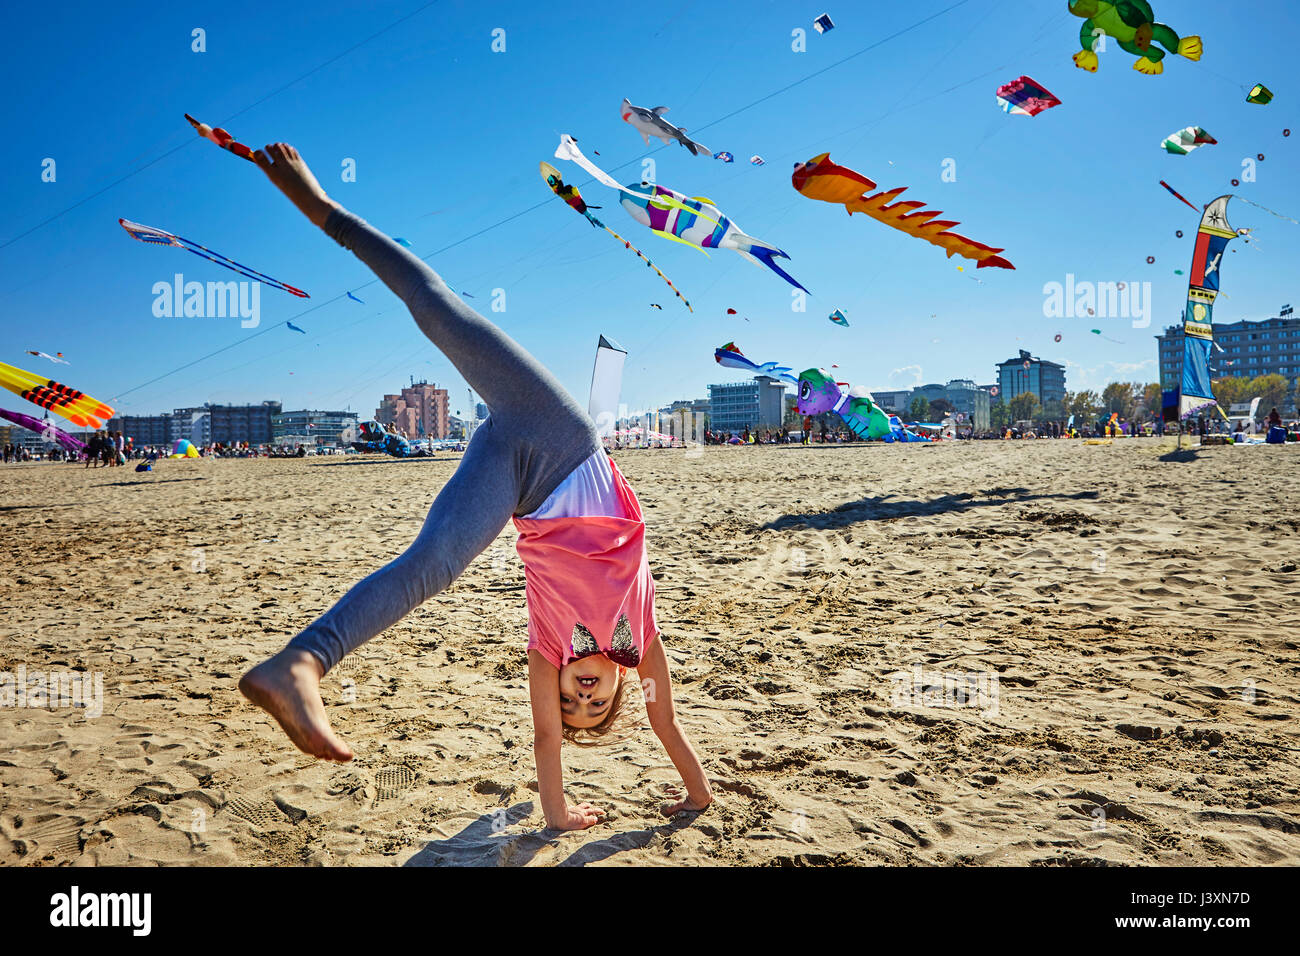 Young girl doing cartwheel on beach, kites flying in sky behind her, Rimini, italy - Stock Image